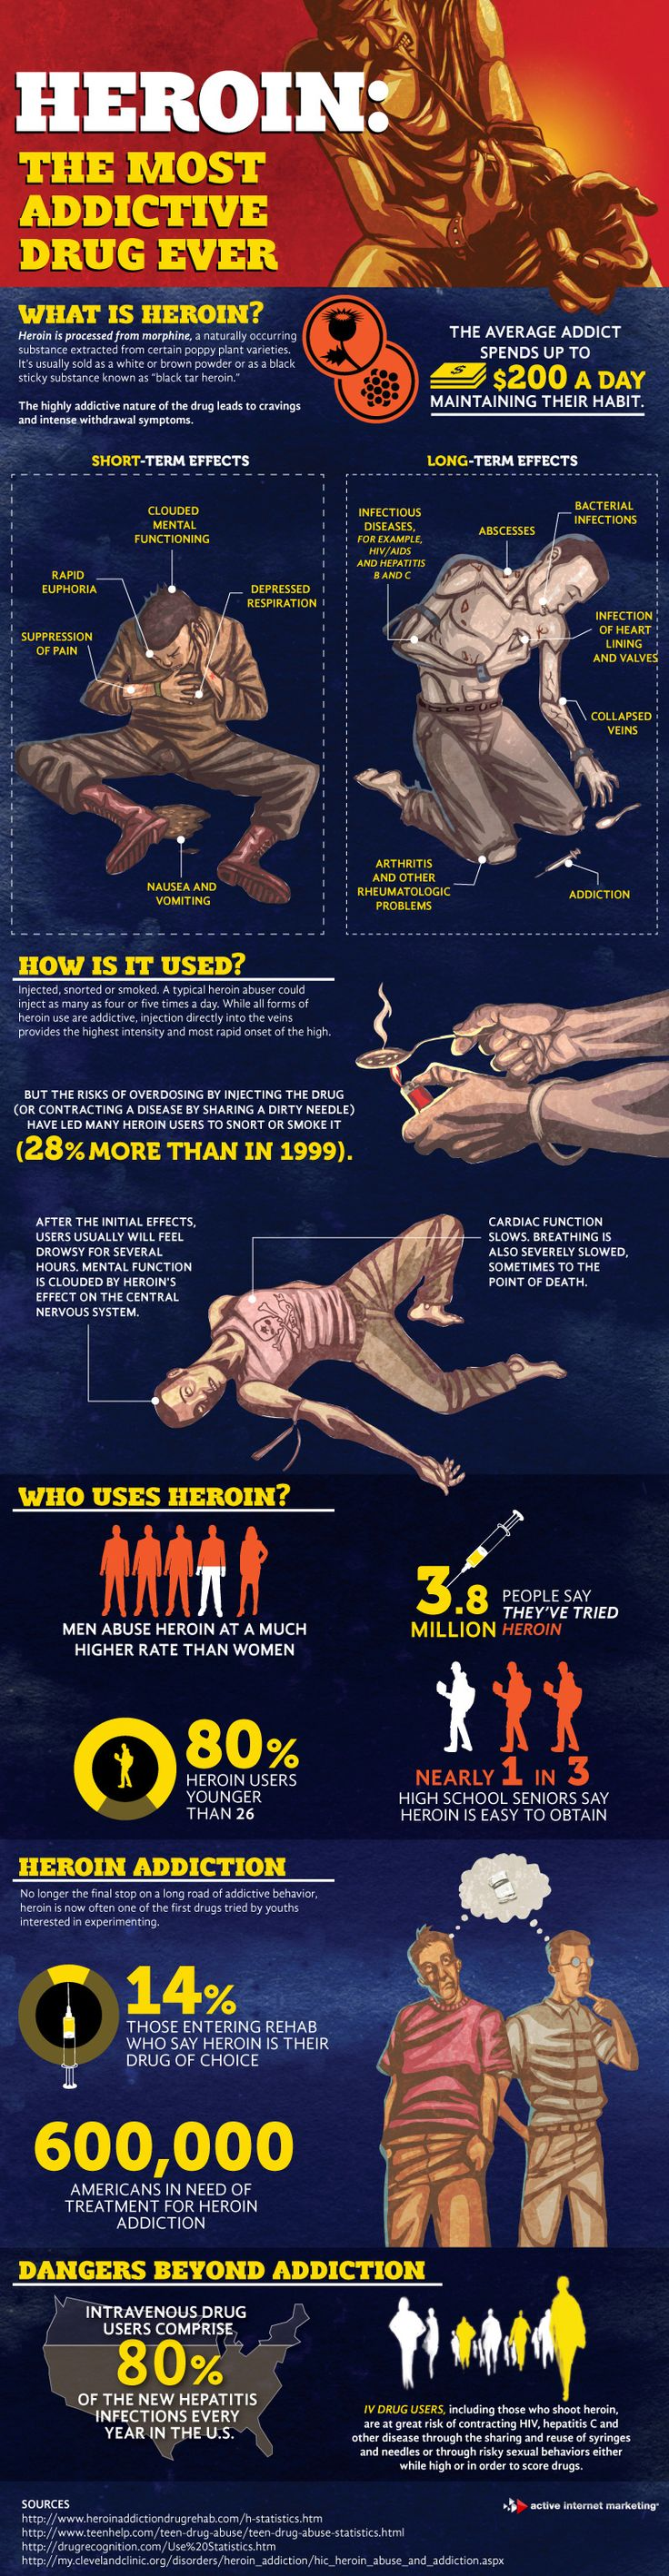 Heroin is known as the most addictive drug ever, and with very good reason. Those who suffer from heroin addiction spend an average of $200 per day to